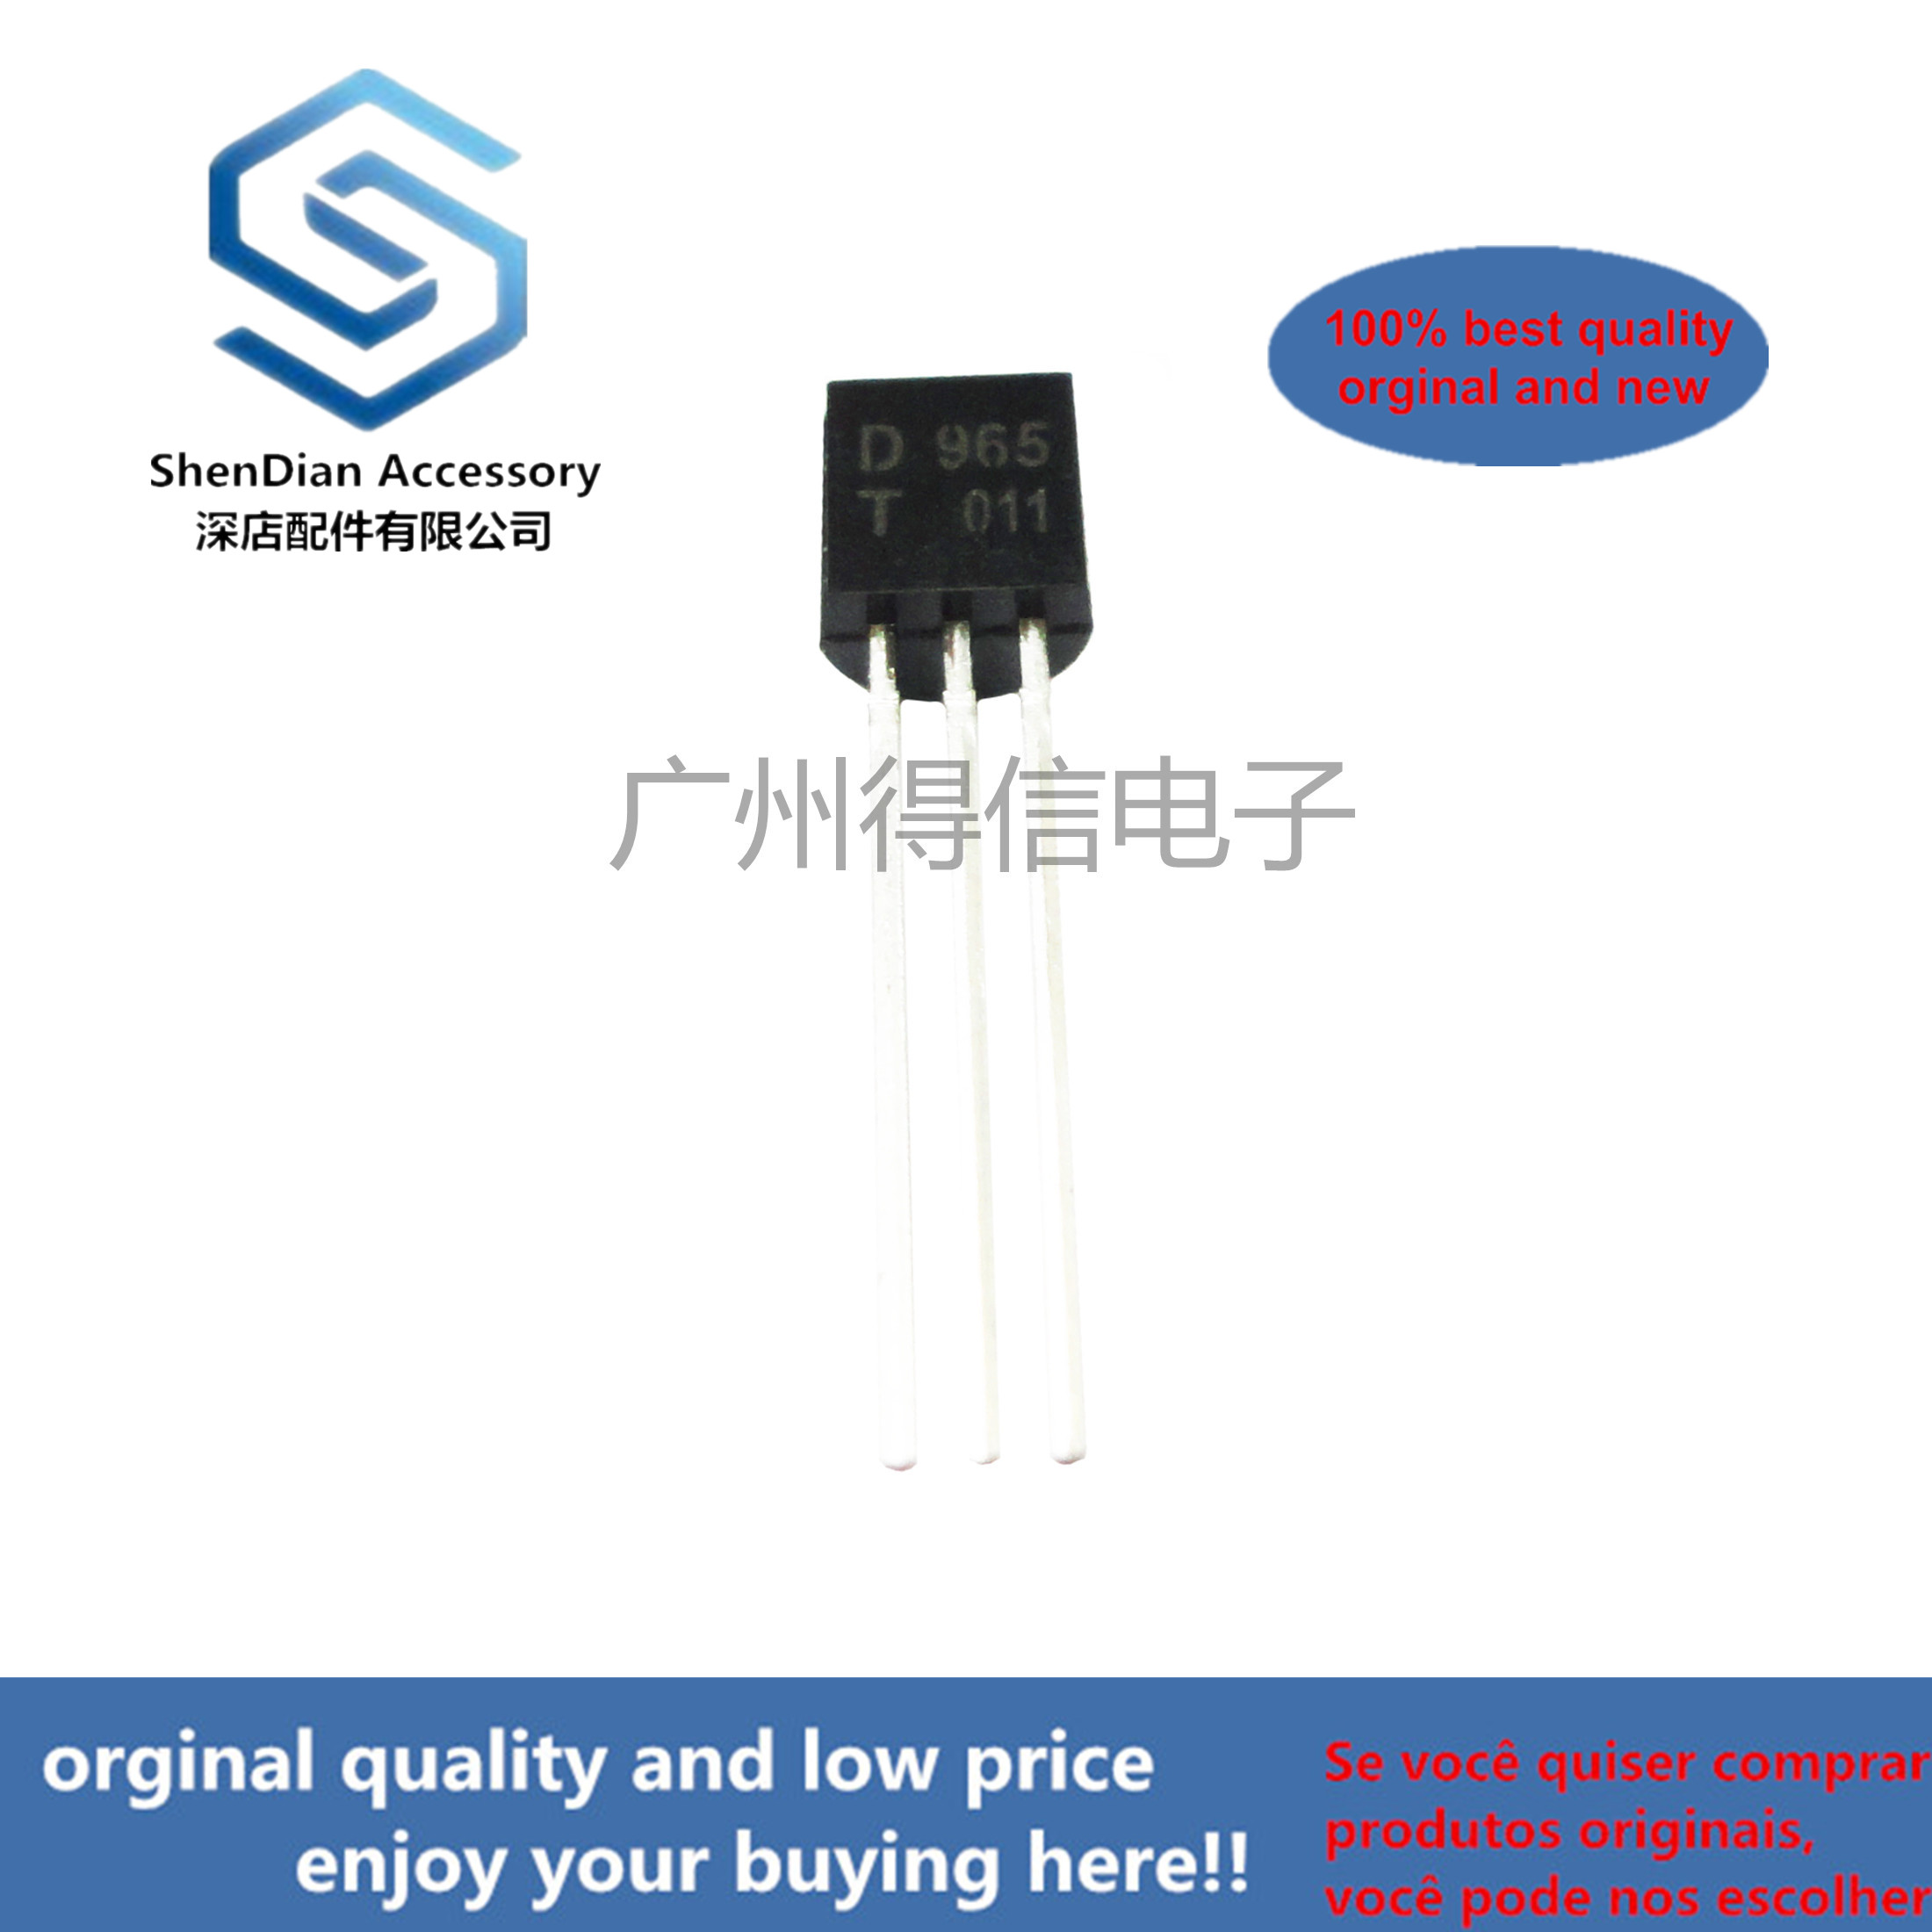 30pcs 100% Orginal New 2SD965T D965 965 TO-92 Silicon NPN Transistor In A SOT-89 Plastic Package Real Photo